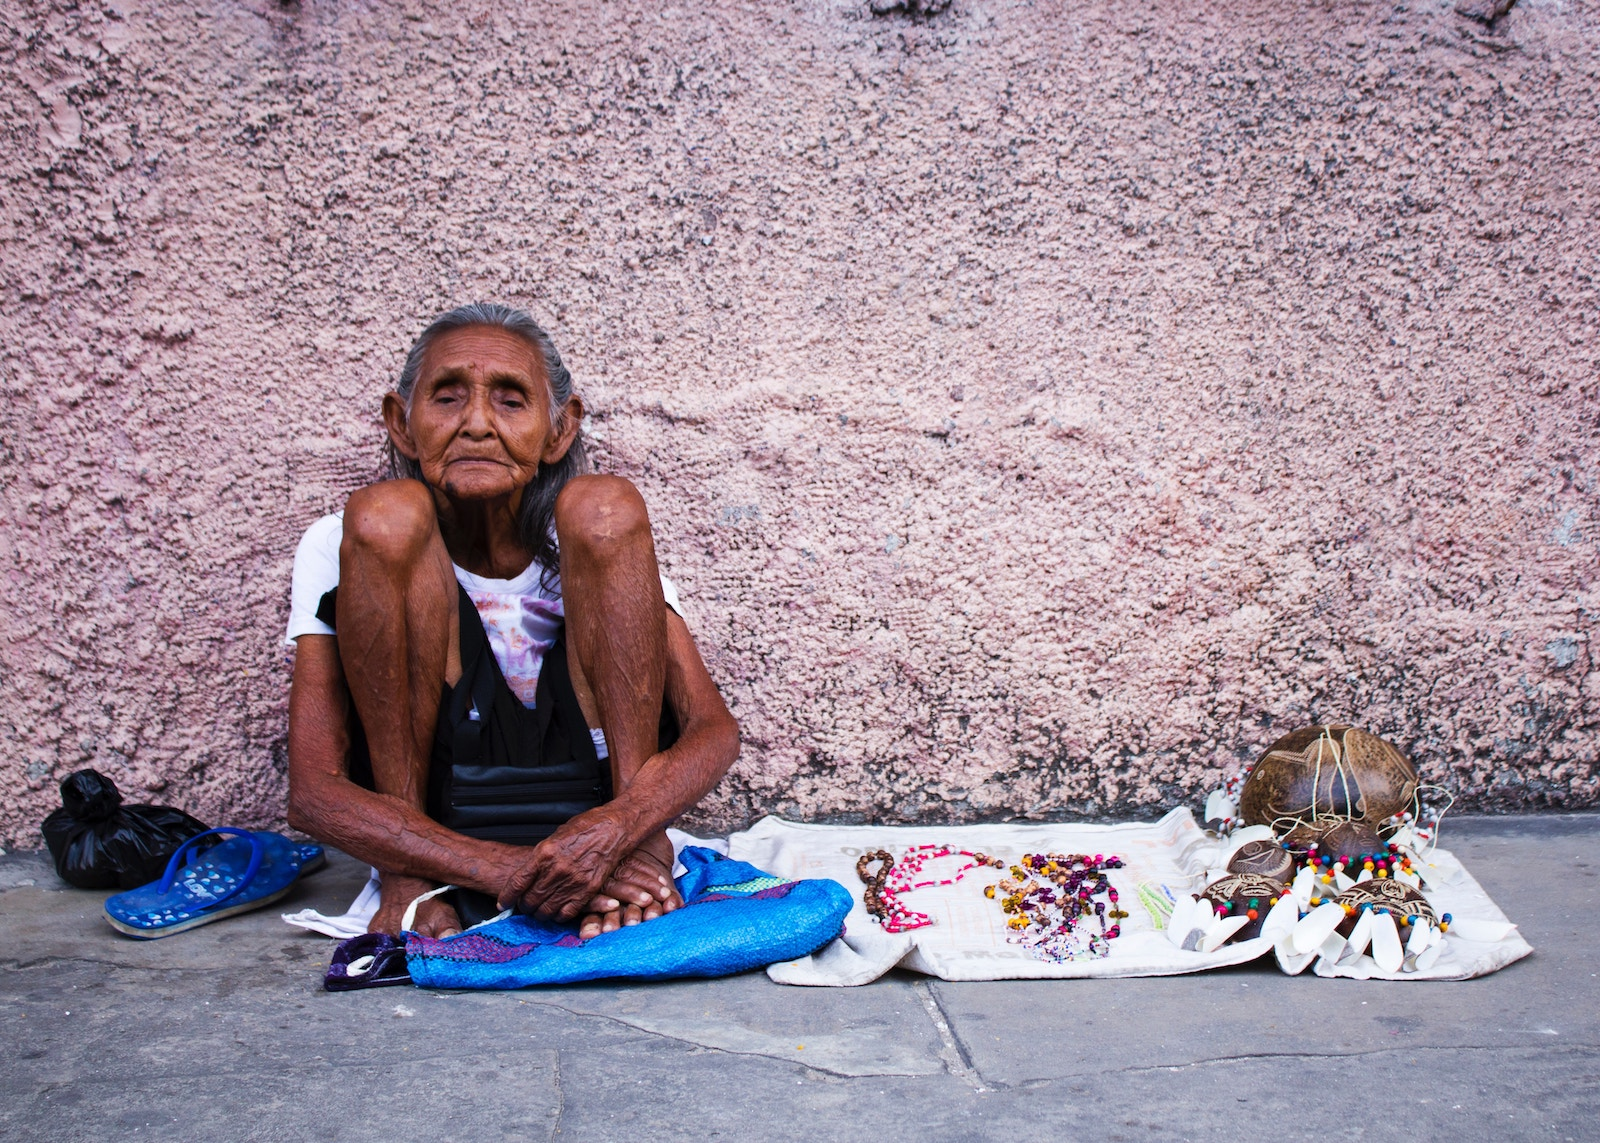 An older woman in Peru selling her handicrafts. Credit Ursula Spaulding